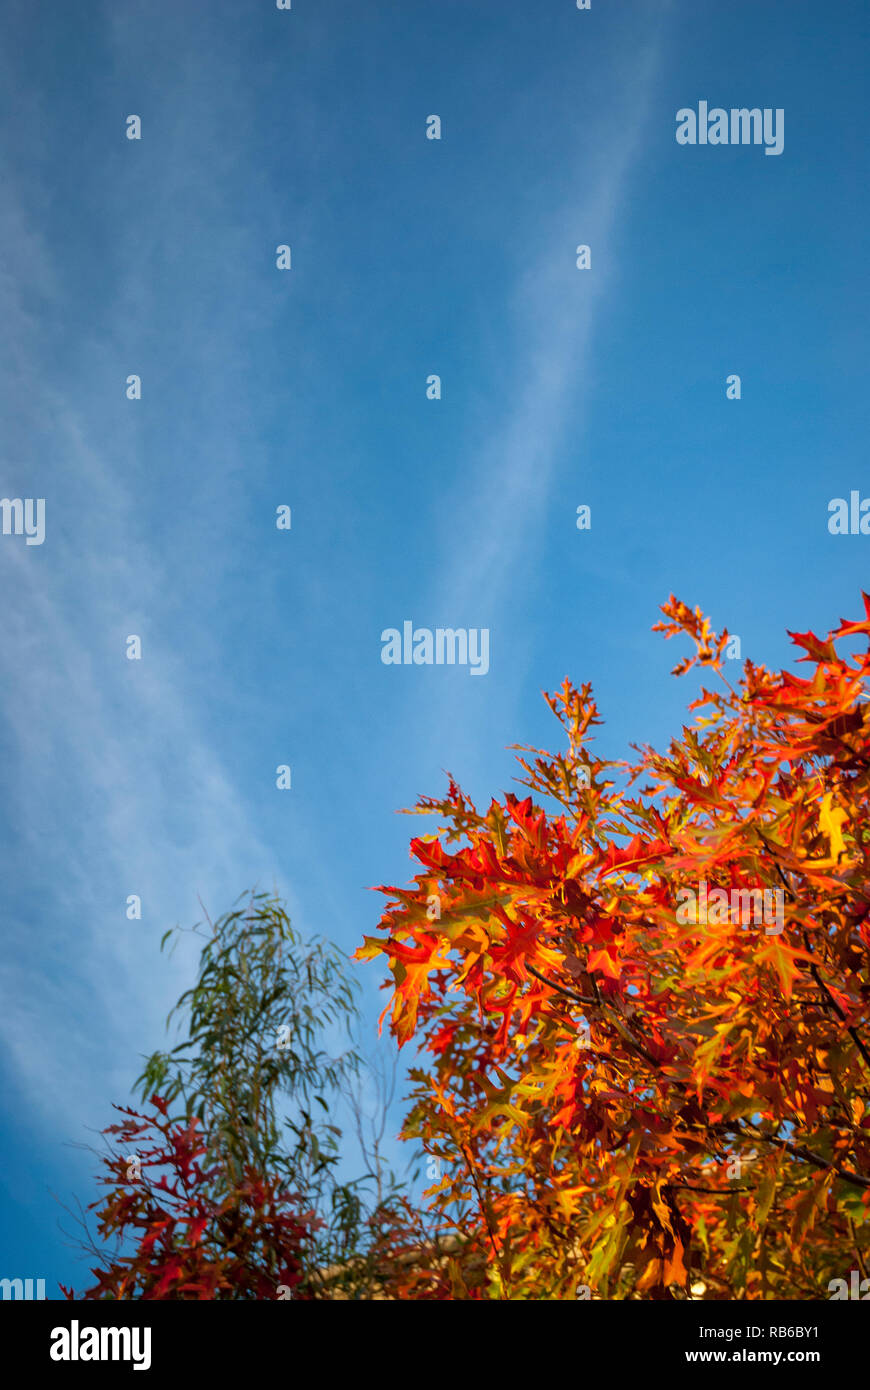 Orange autumn leaves of a Japanese maple against a blue sky with wispy clouds, vertical - Stock Image